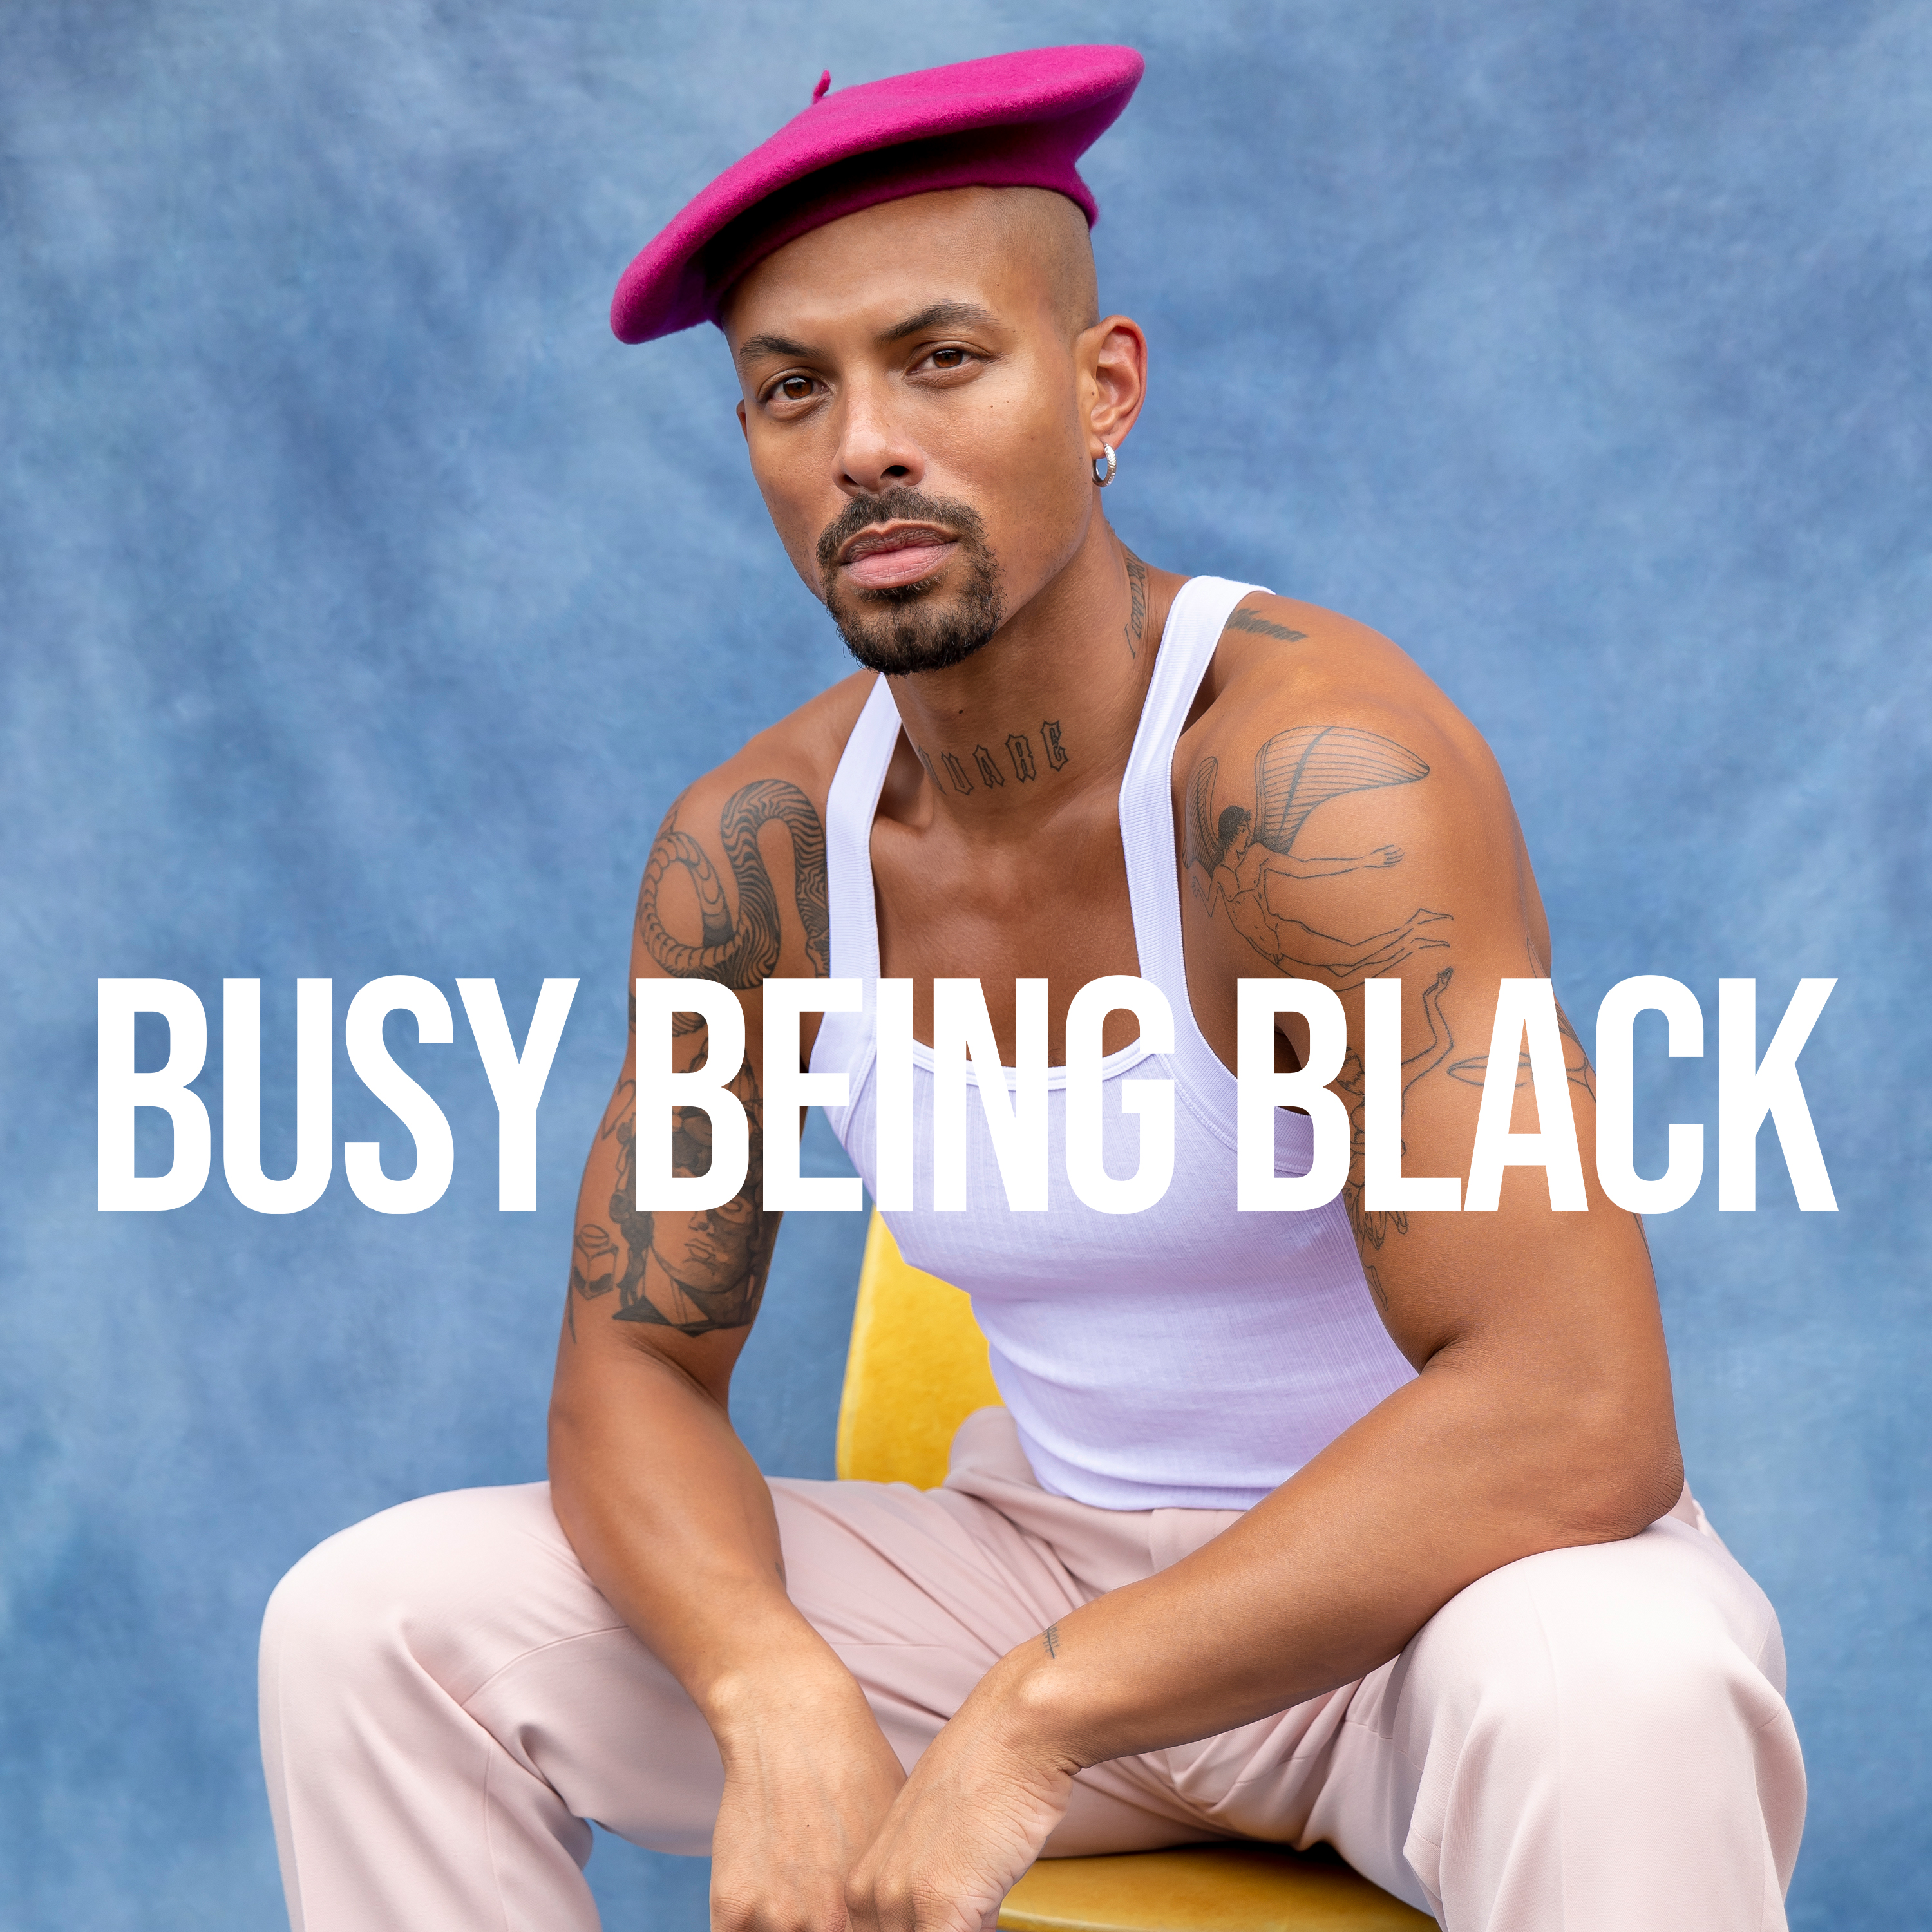 Busy Being Black Image